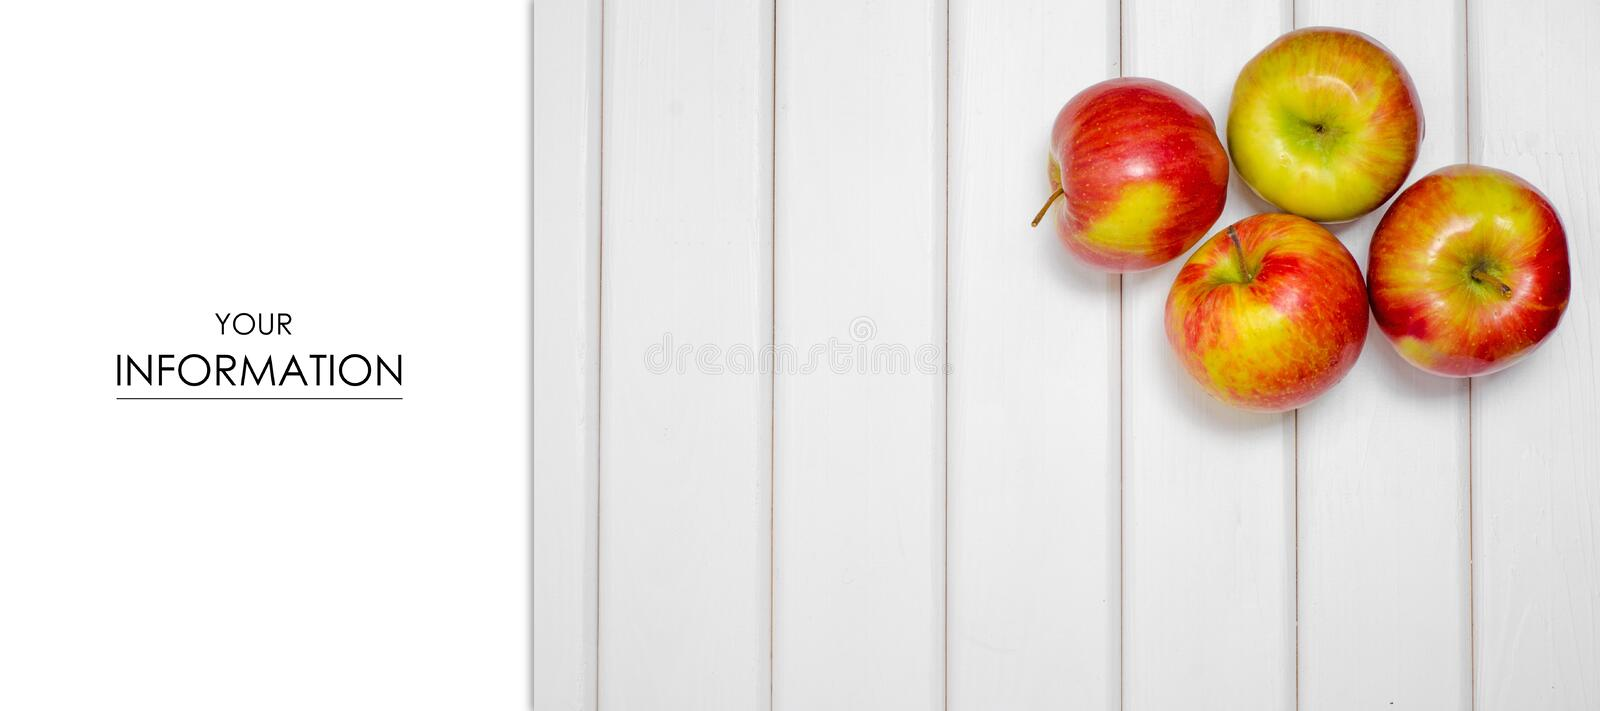 Red beautiful apples pattern royalty free stock image